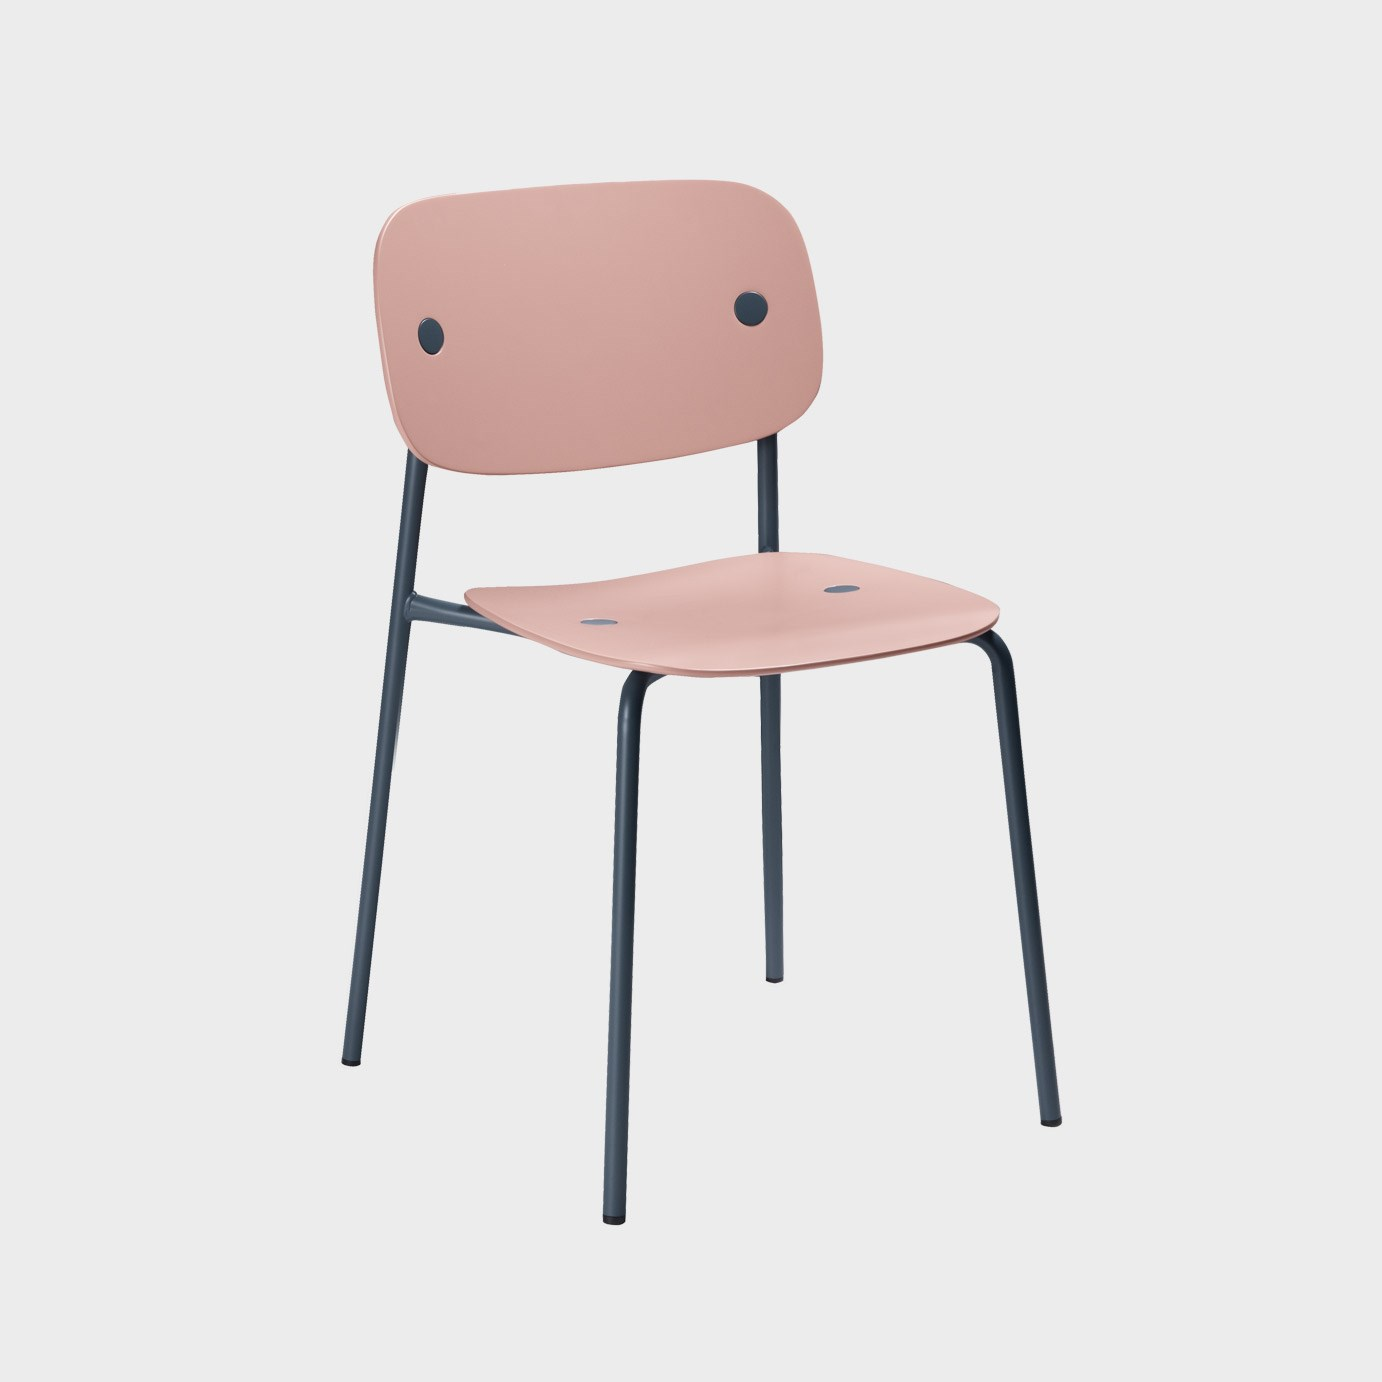 anagram-chair-pink-blue-front.jpg